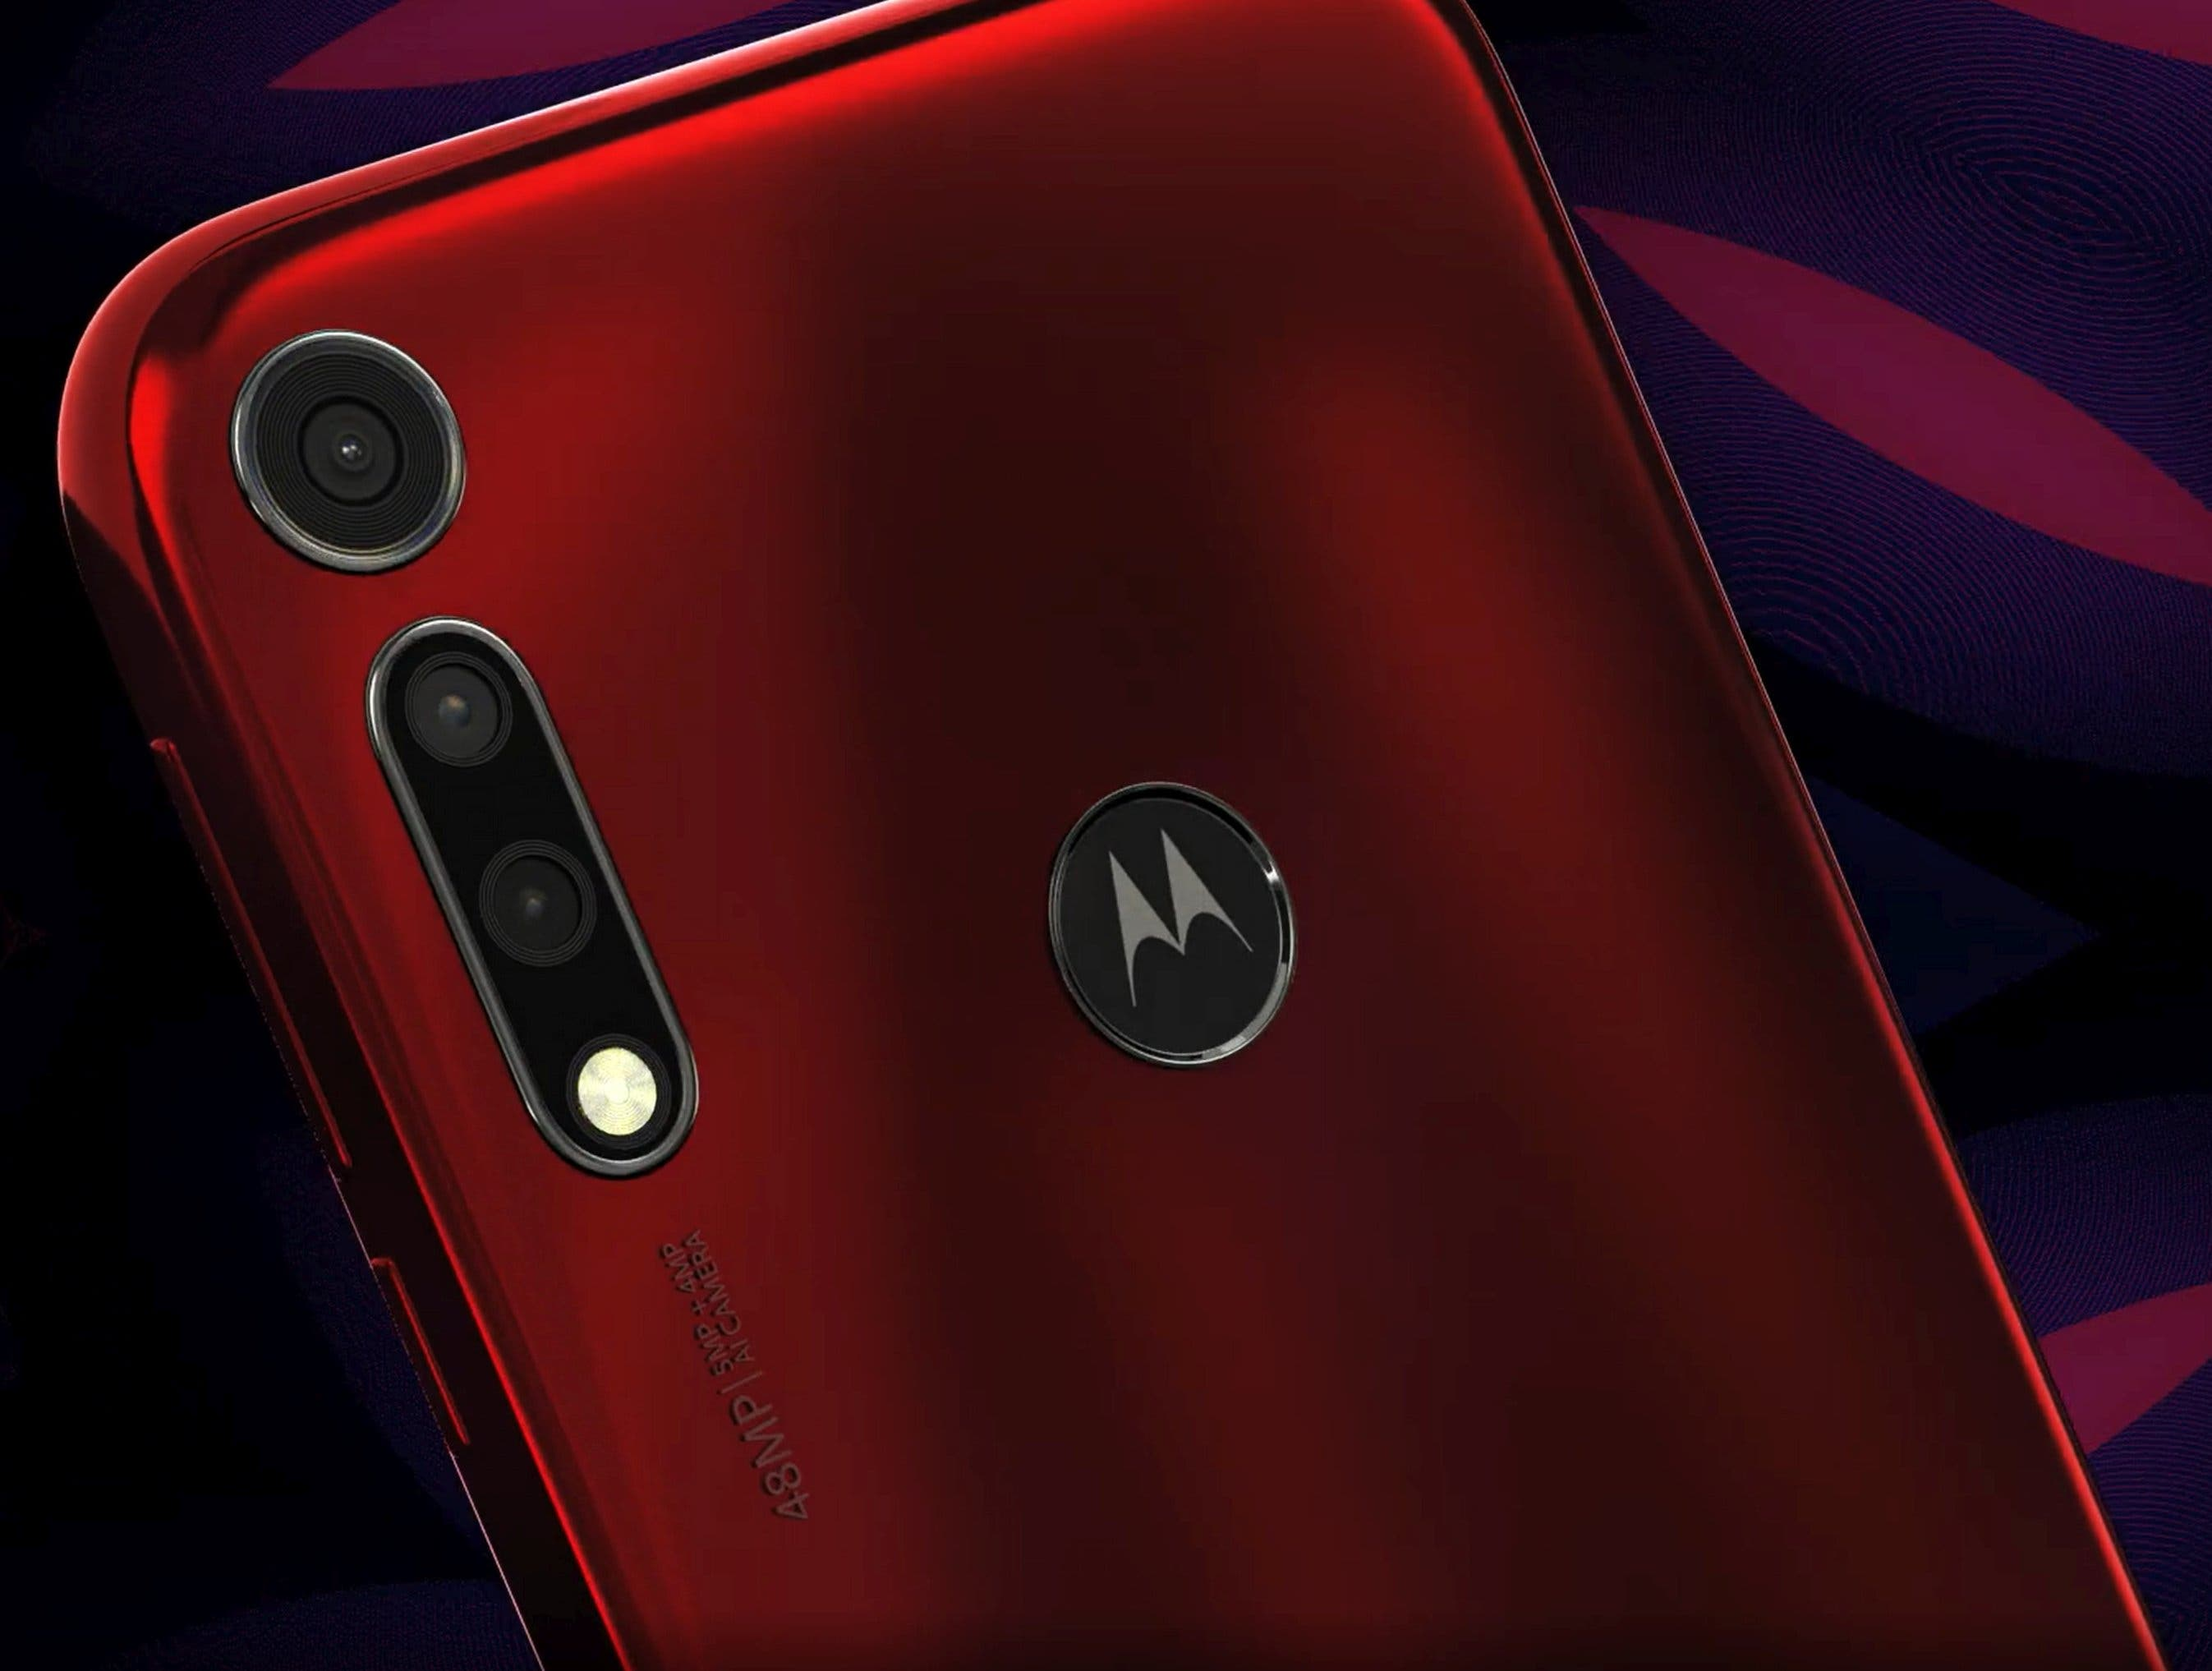 Moto G8 leak shows triple rear camera, possible release soon